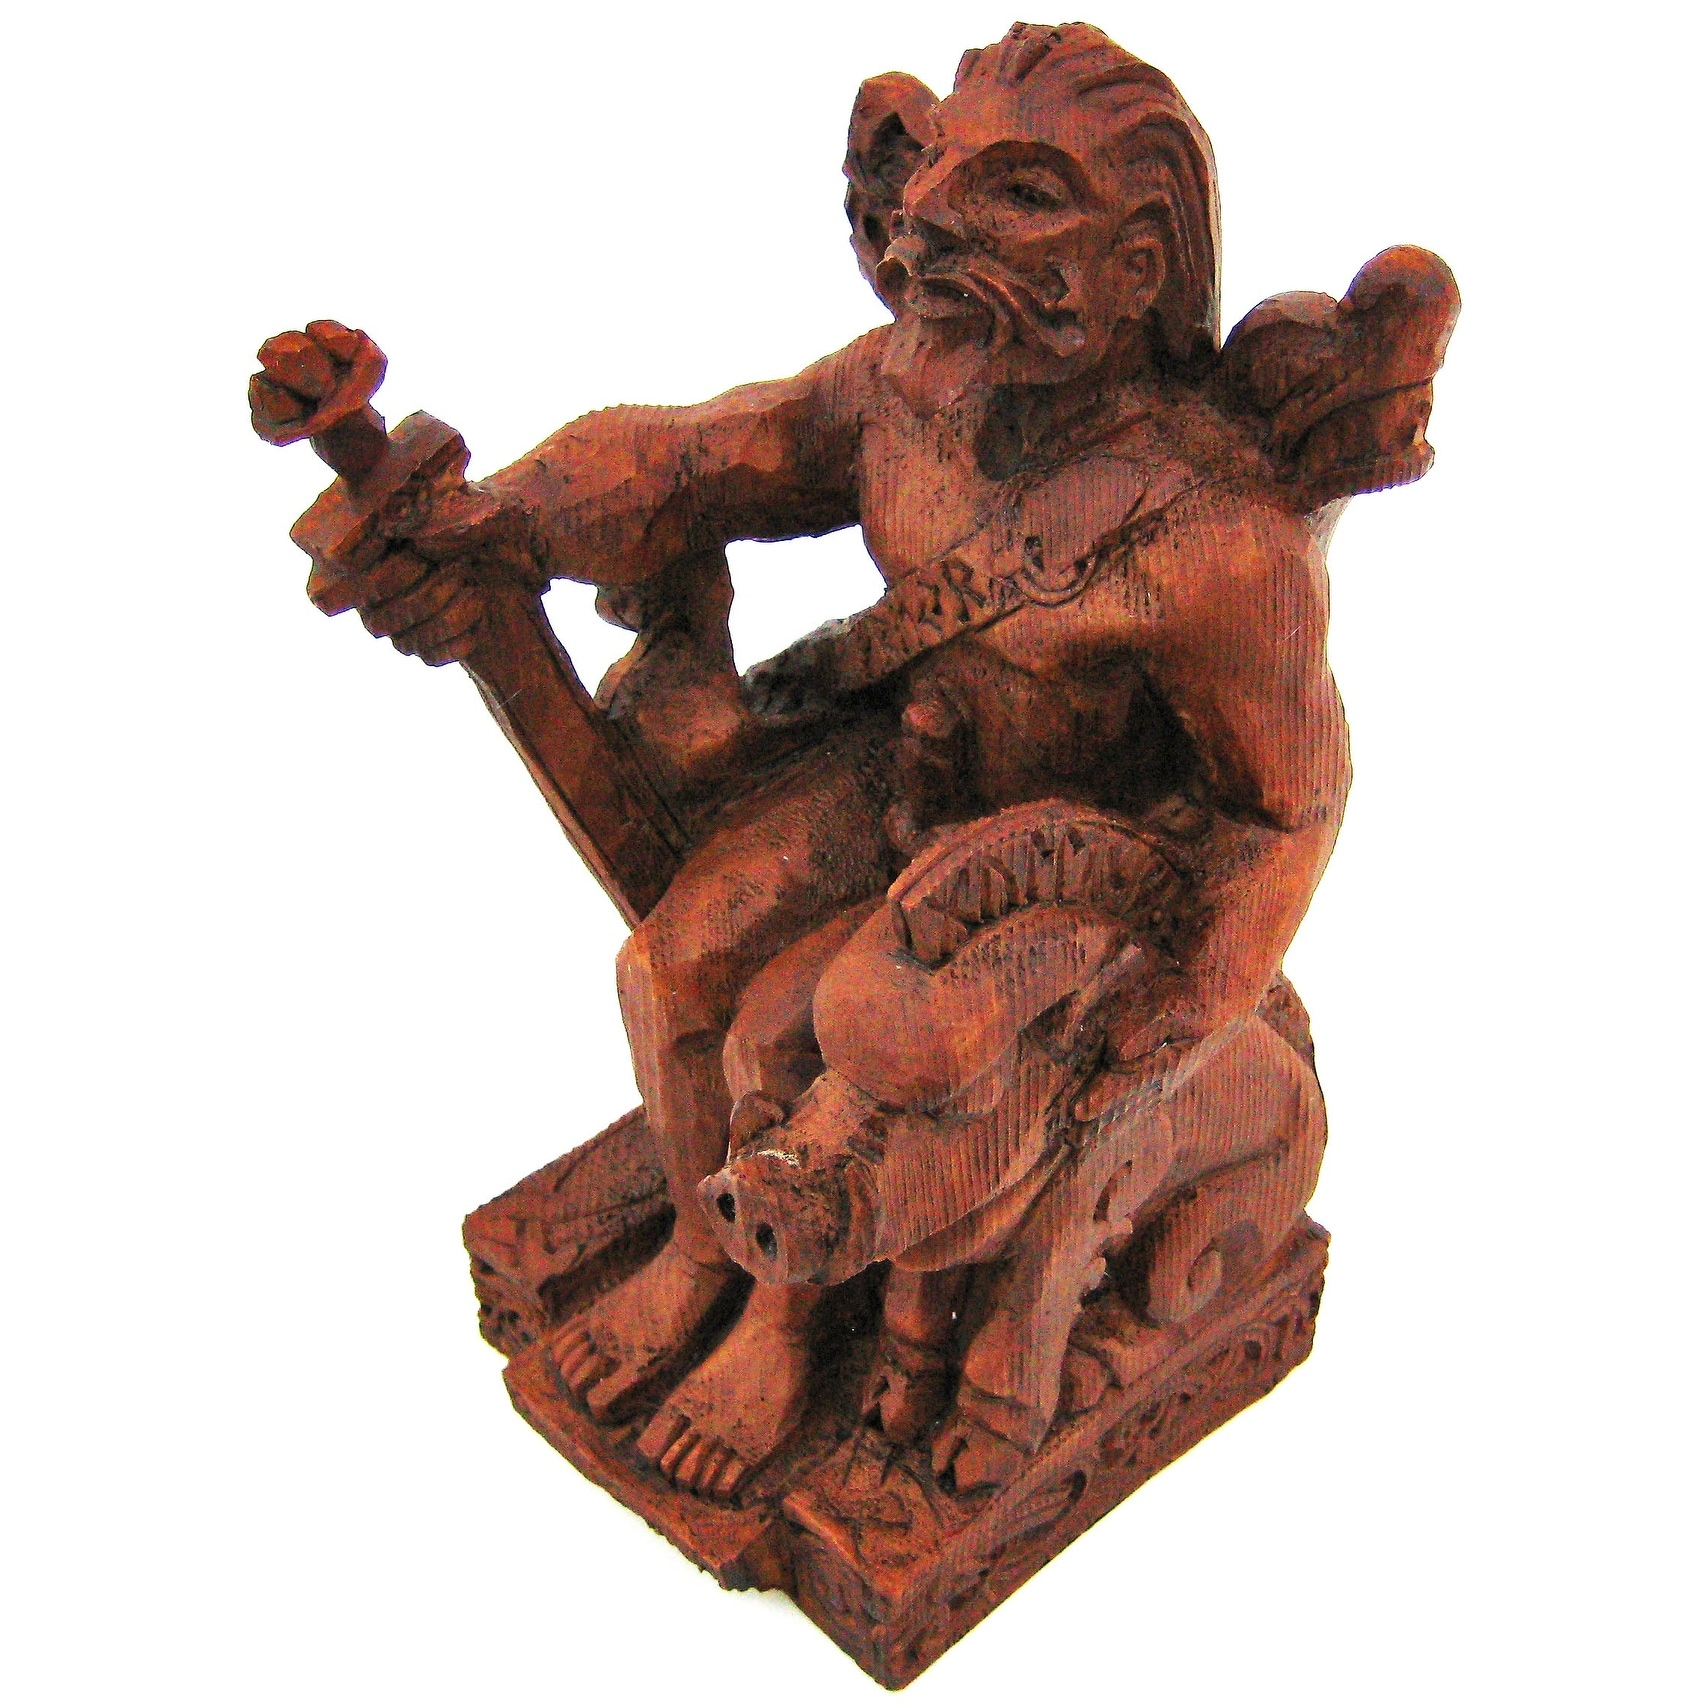 Shop Norse God Freyr Wood Finish Statue Pagan Fertility   Free Shipping On  Orders Over $45   Overstock.com   16819317